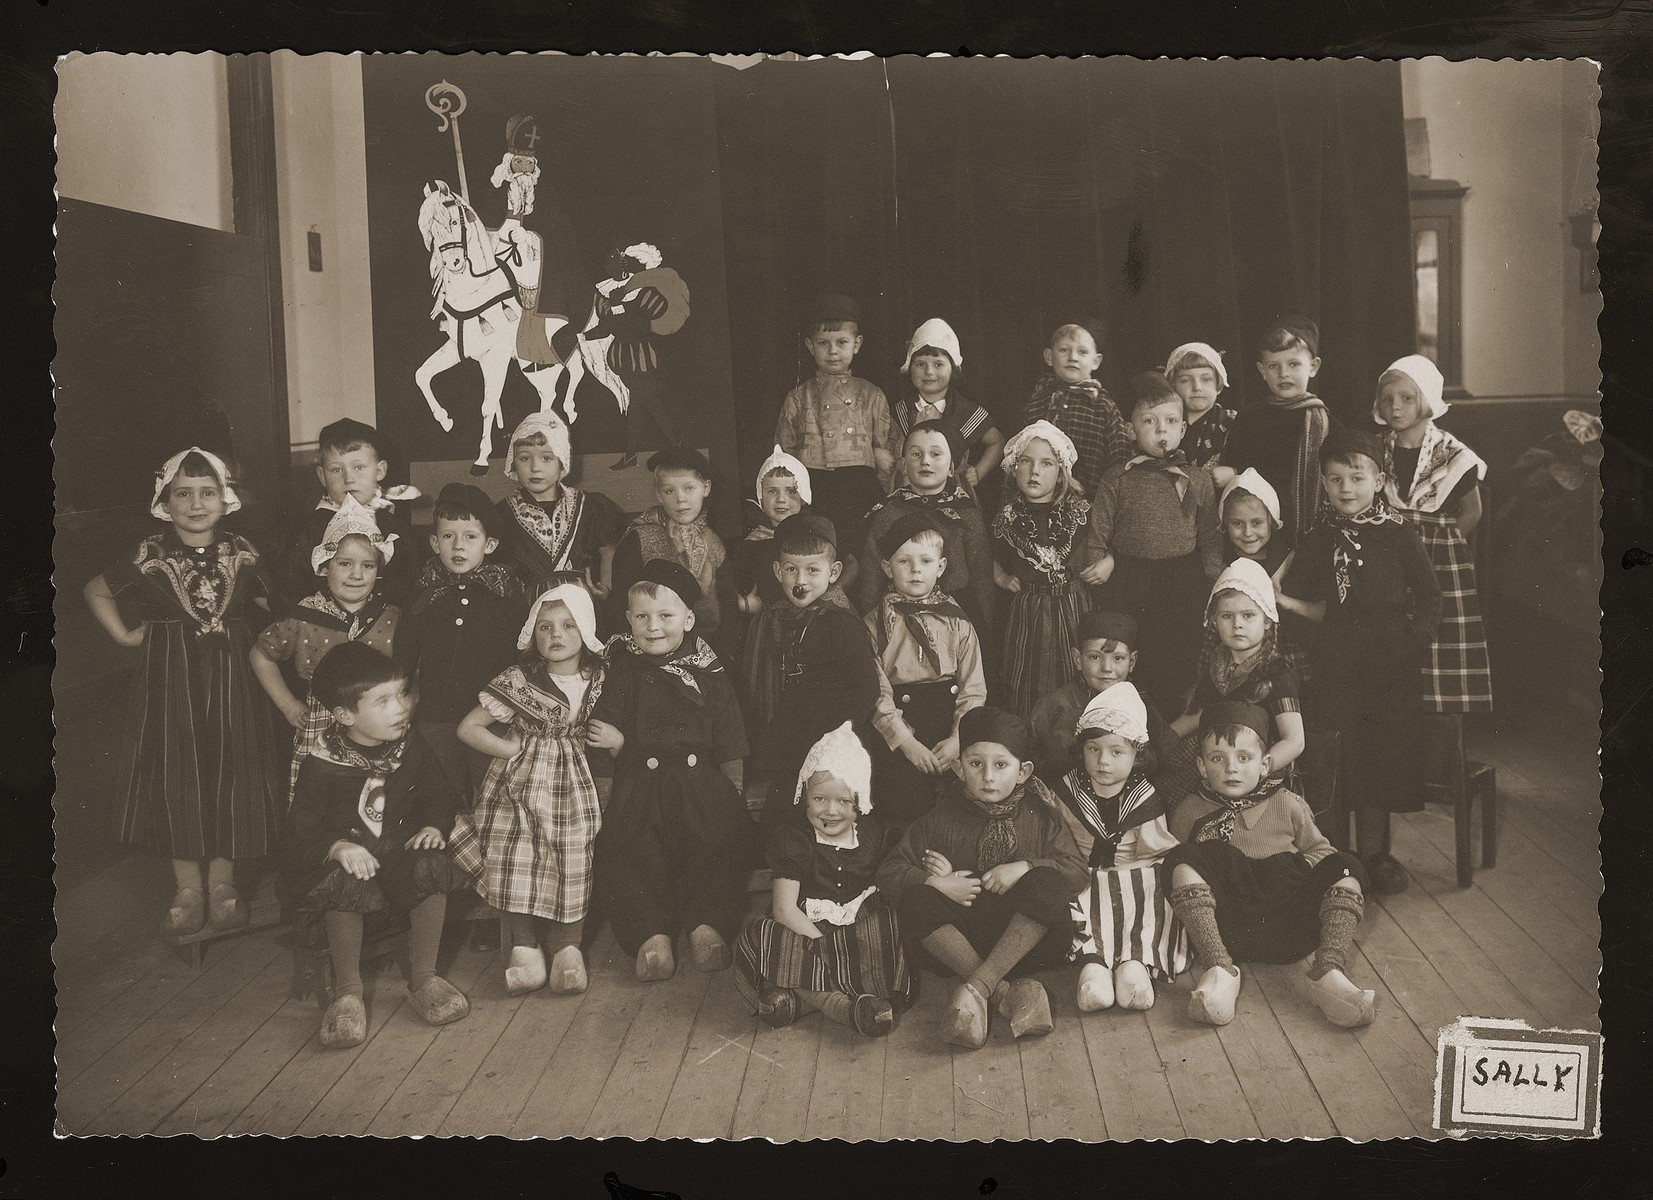 Dutch children pose in traditional costume for a school photo.  Included in the photo are a few Jewish children in hiding.